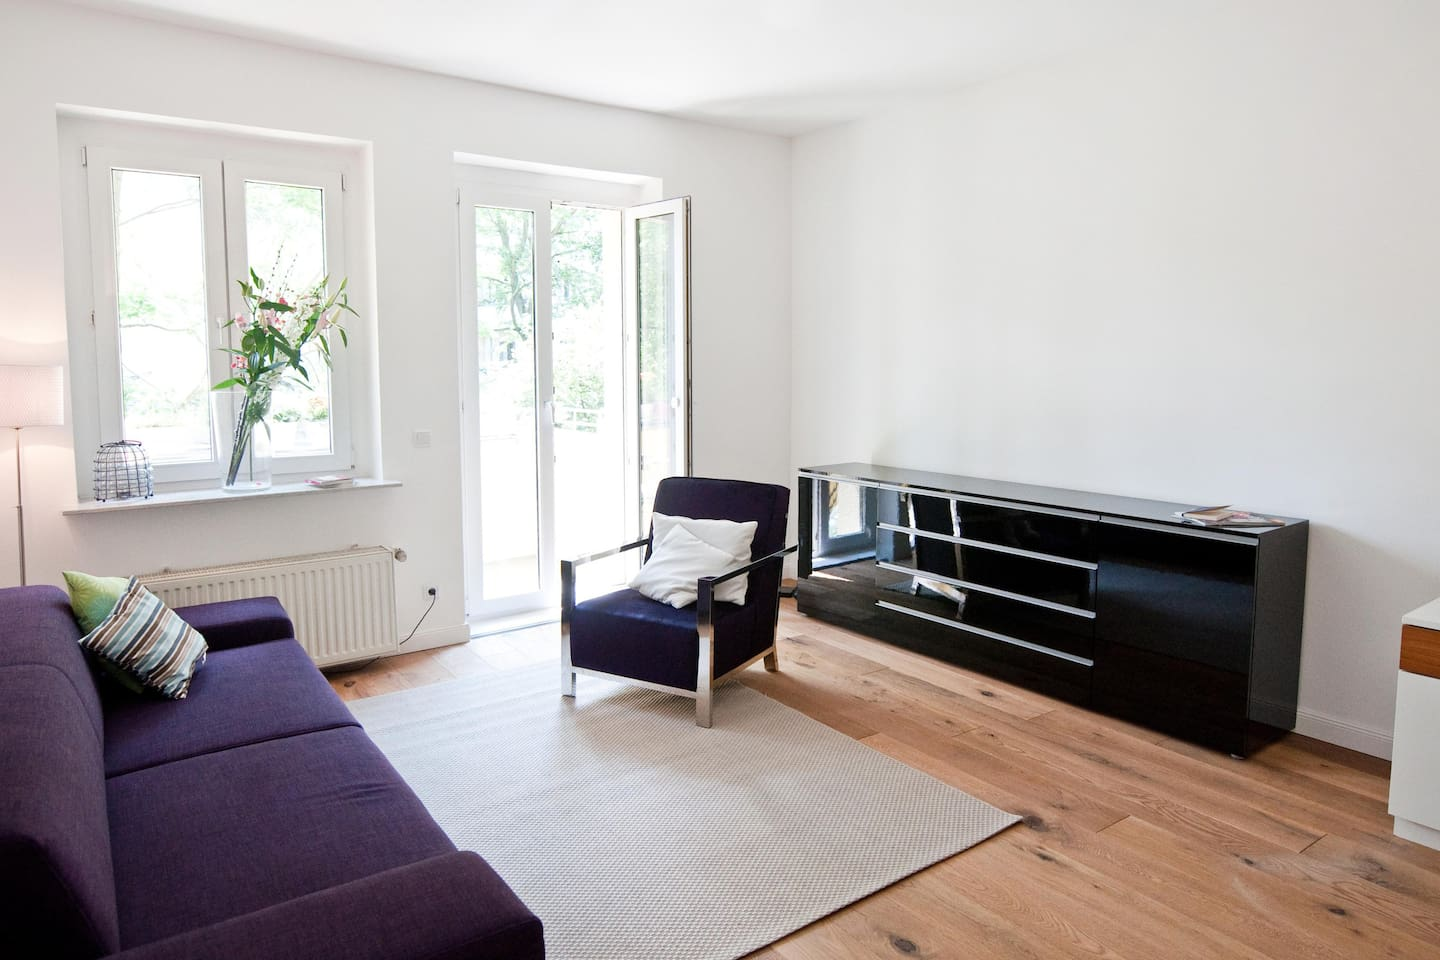 Modern designed living room with TV just added for you